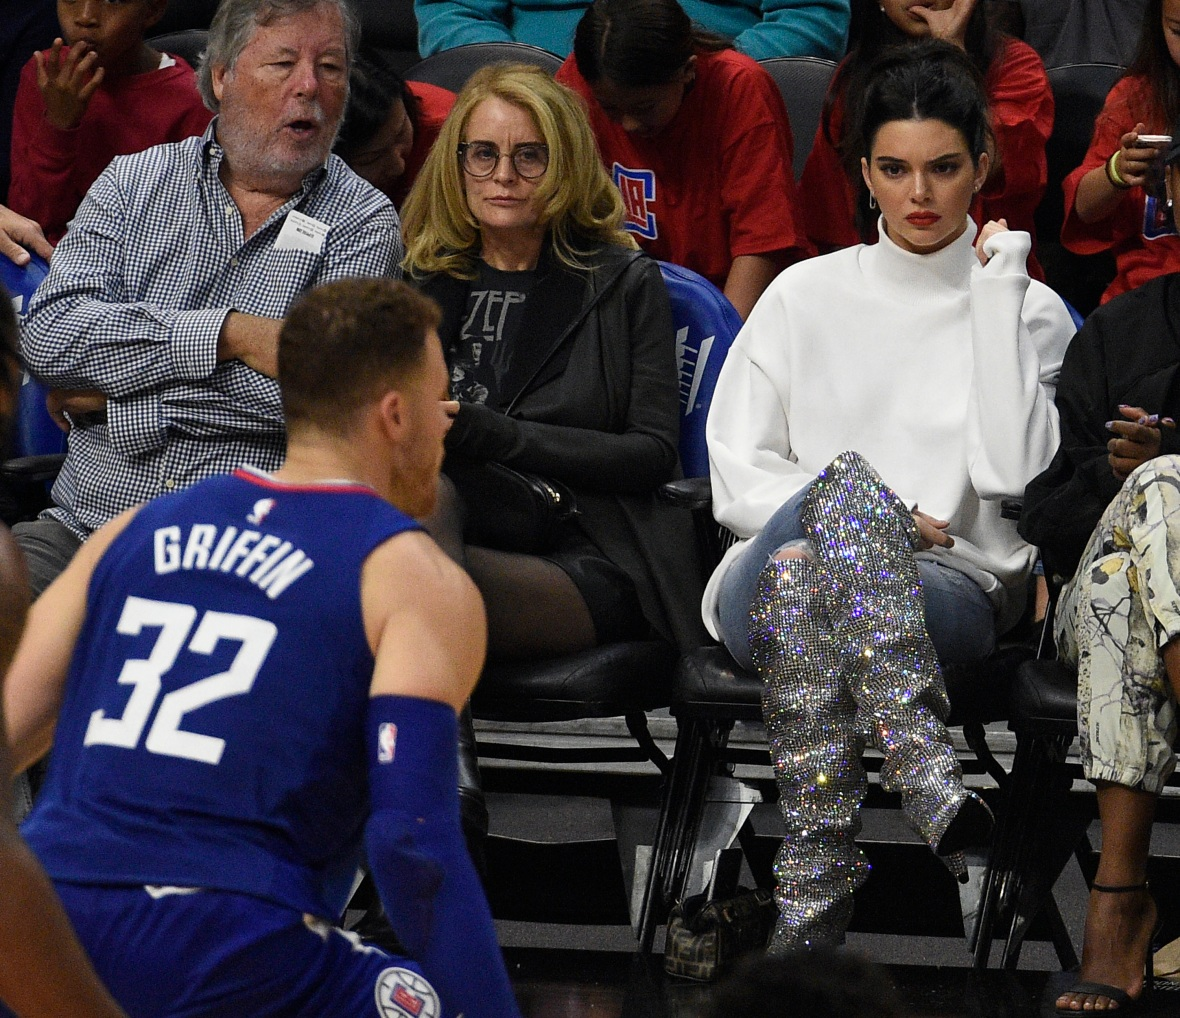 kendall jenner blake griffin getty